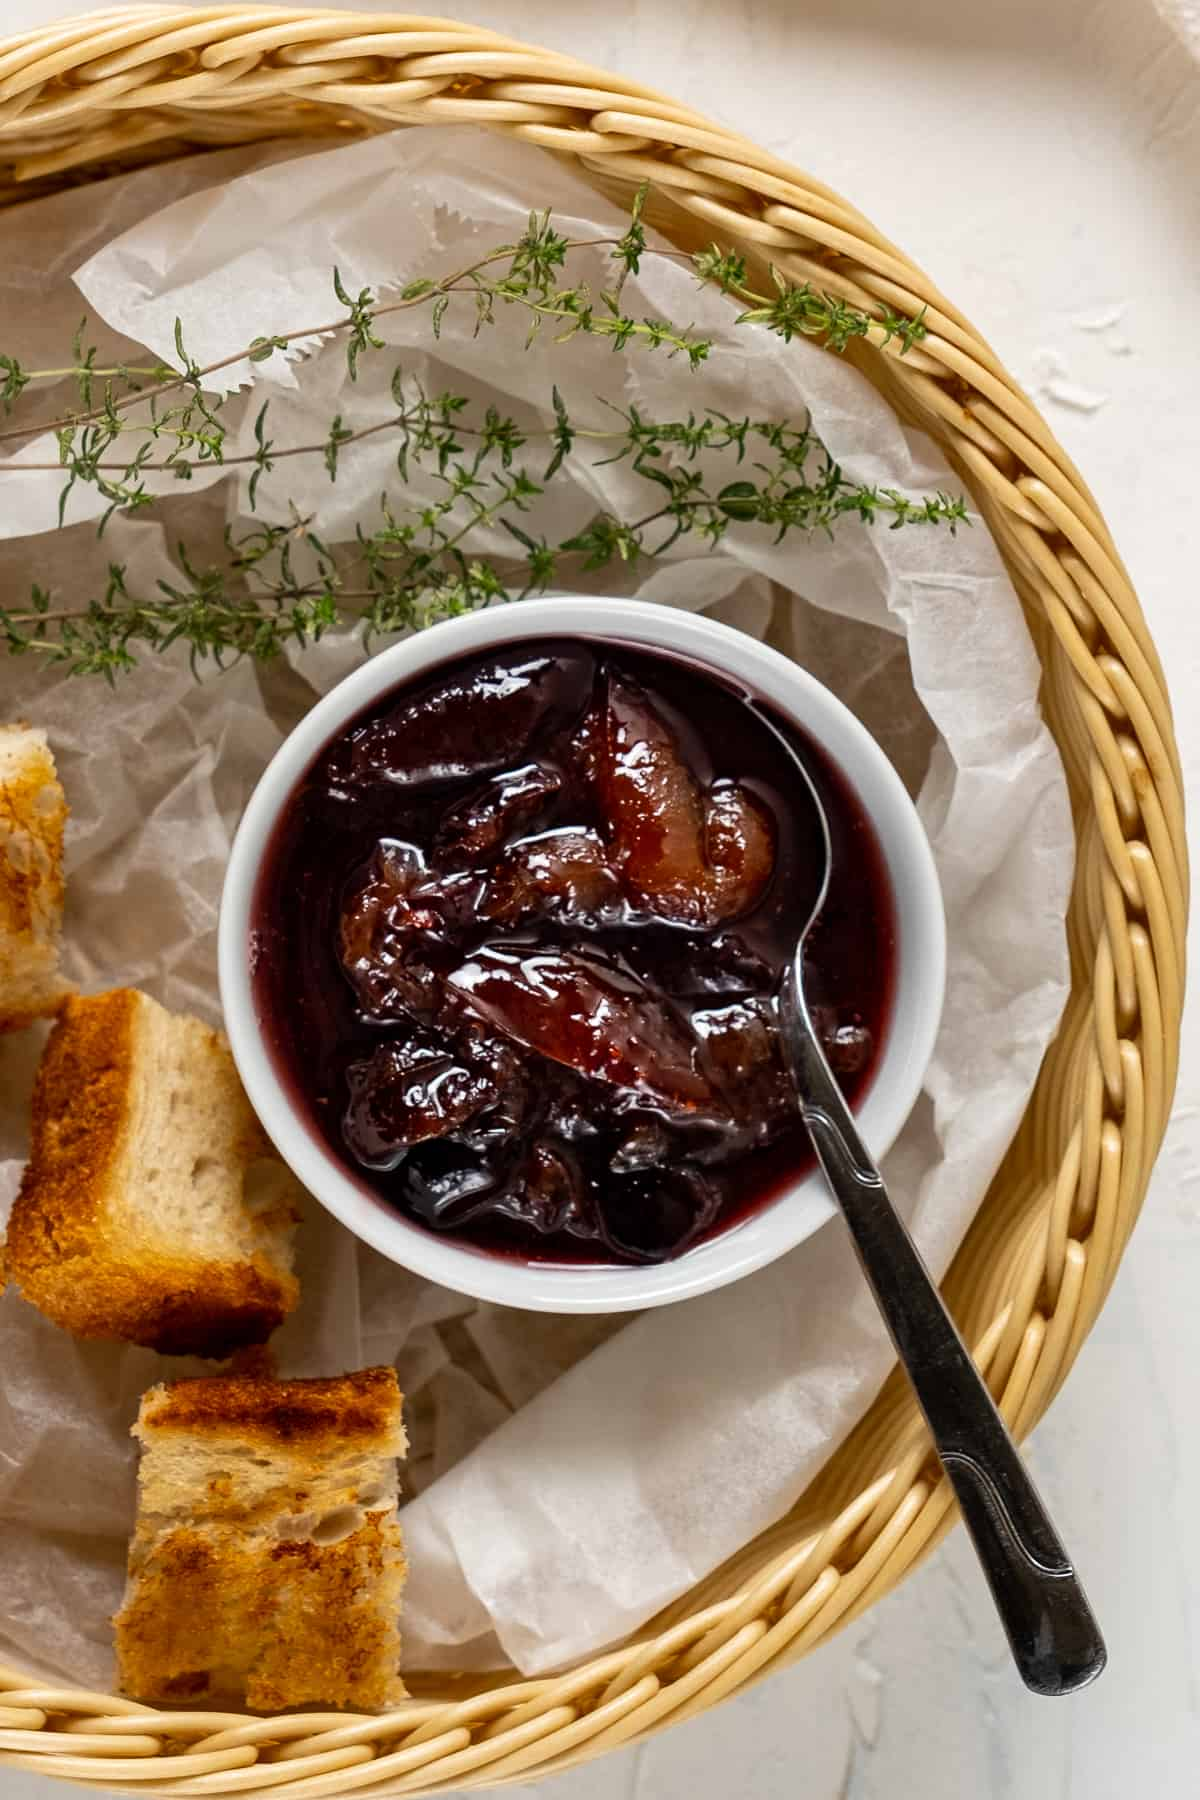 Plum jam in a small white bowl with a spoon in it and toasted mini bread slices and fresh thyme all in a basket.